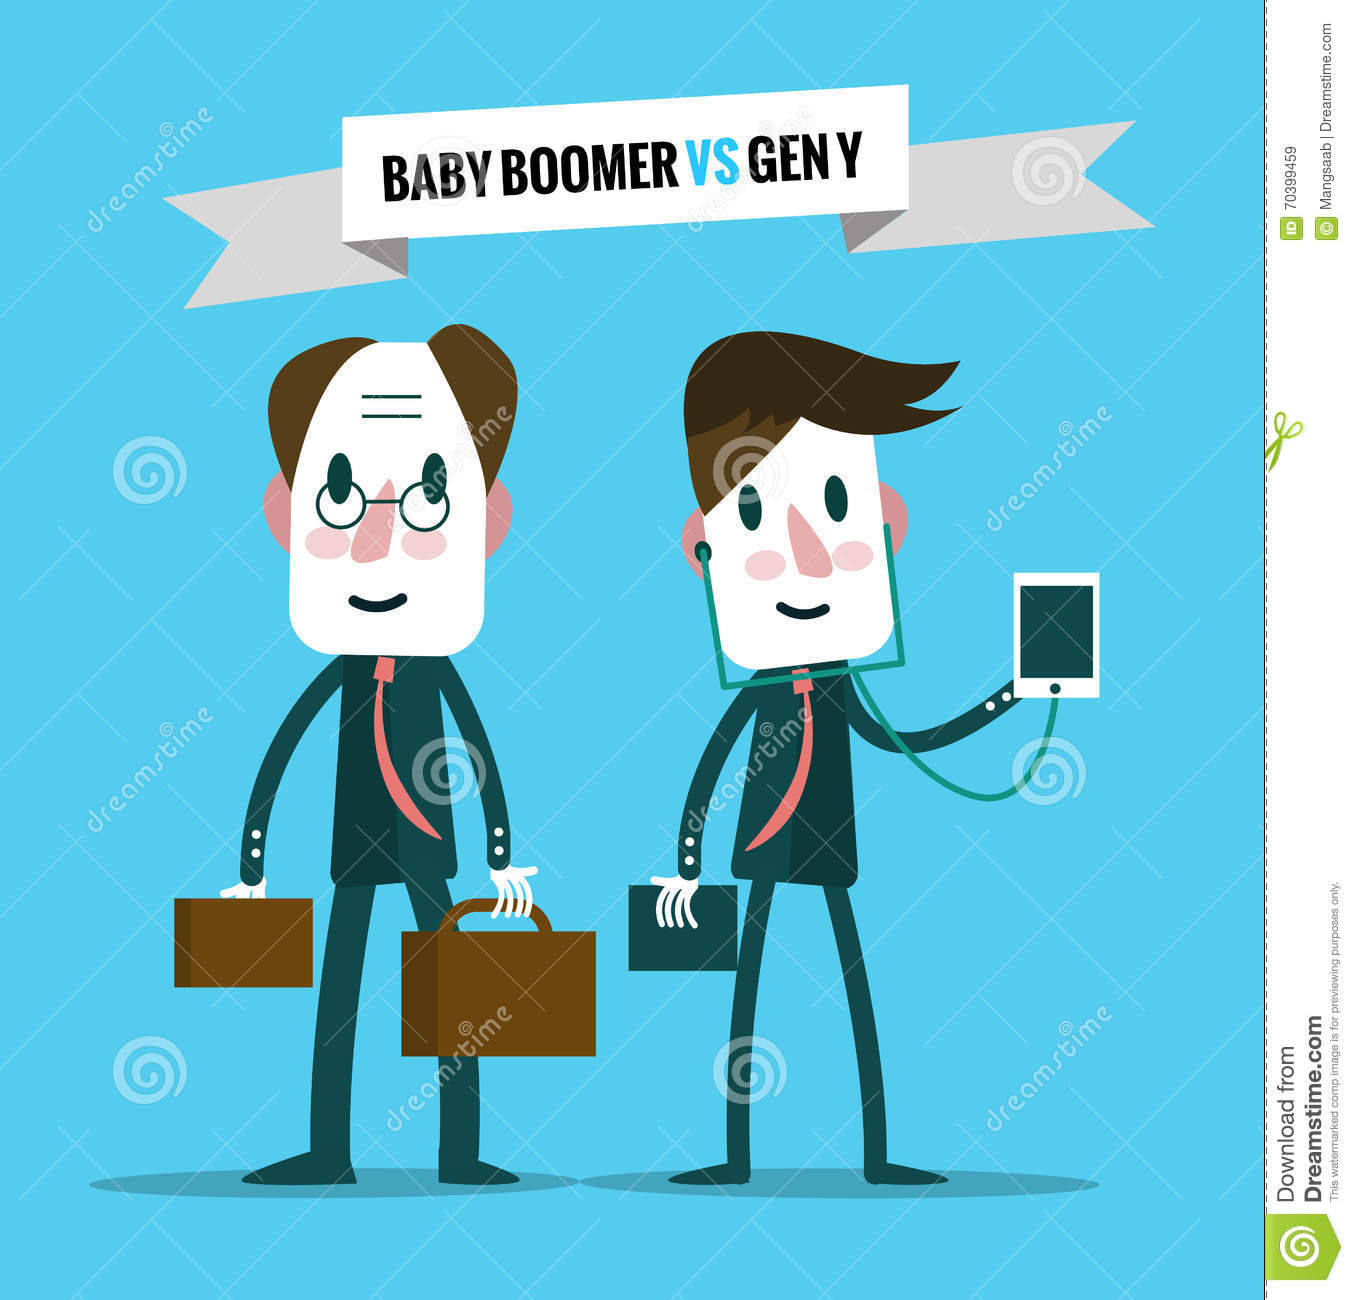 Character Design Artist Resource : Baby boomers vs generation y business human resource